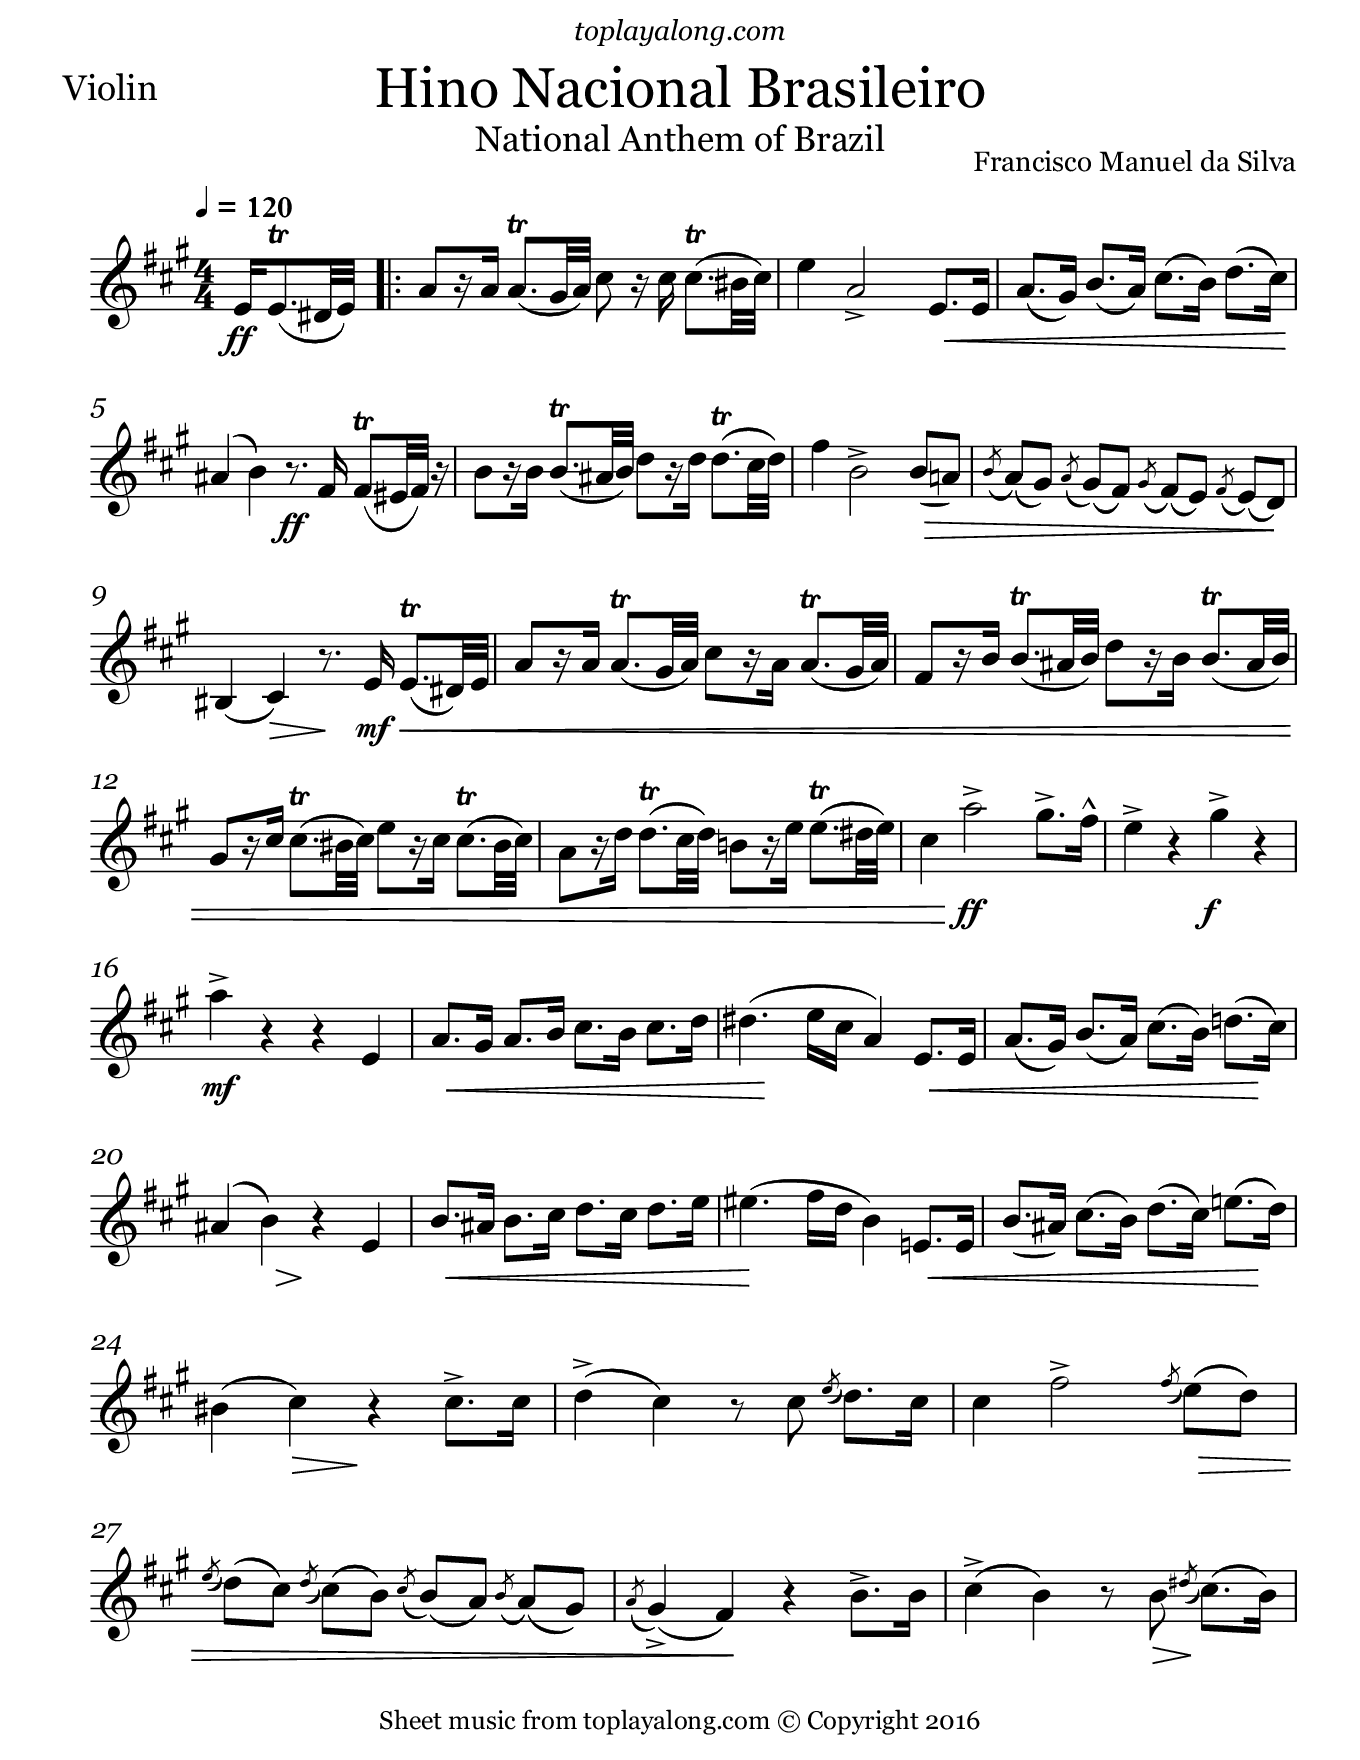 National Anthem of Brazil. Sheet music for Violin, page 1.